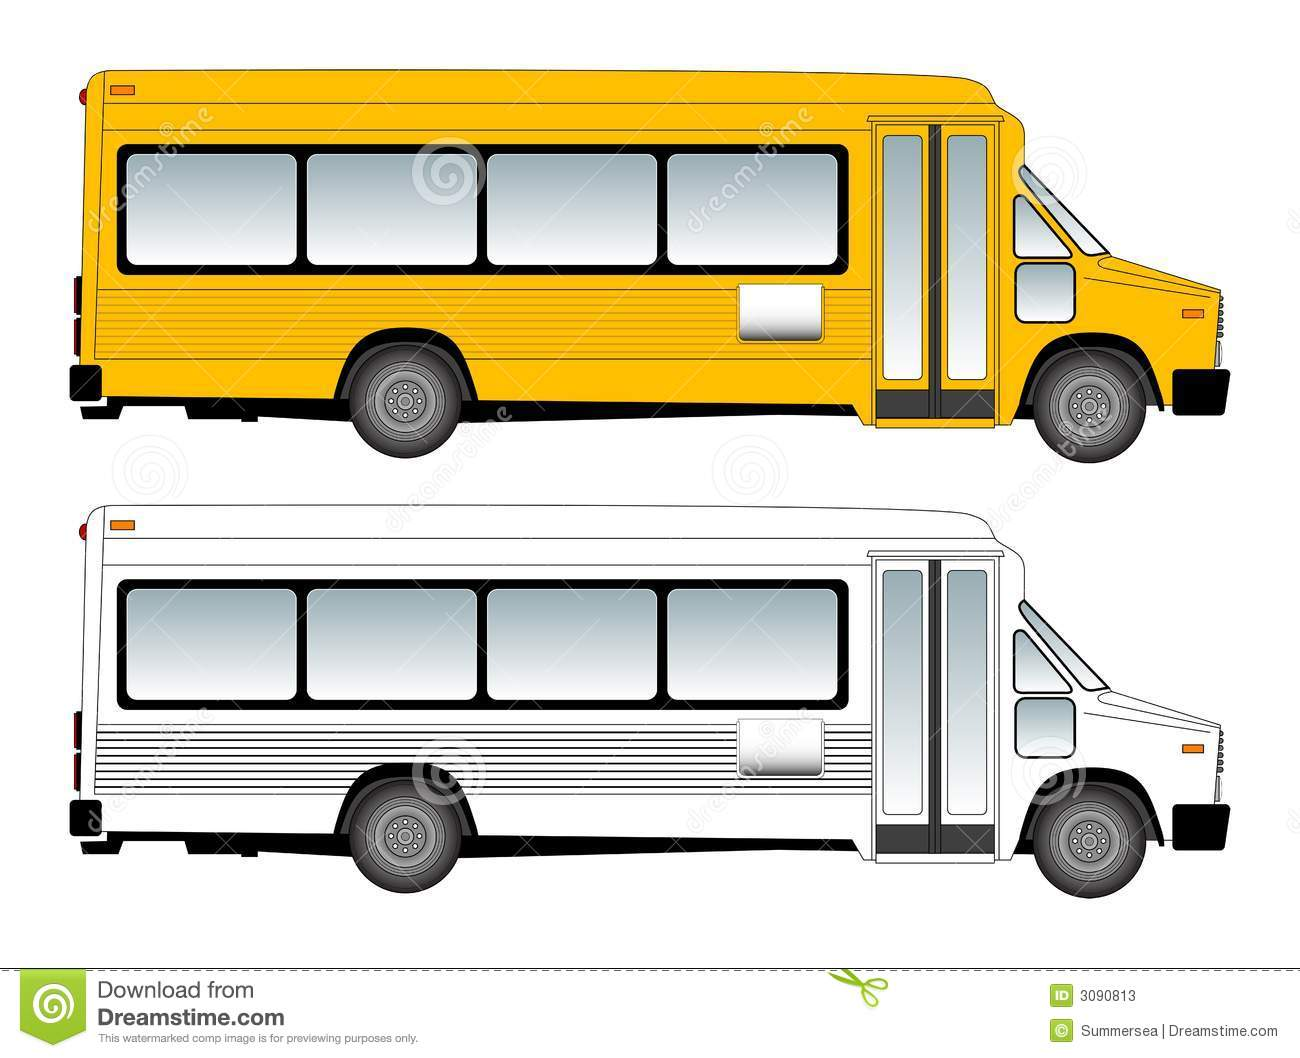 Schoolbus Vector Illustration Stock Photos - Image: 3090813